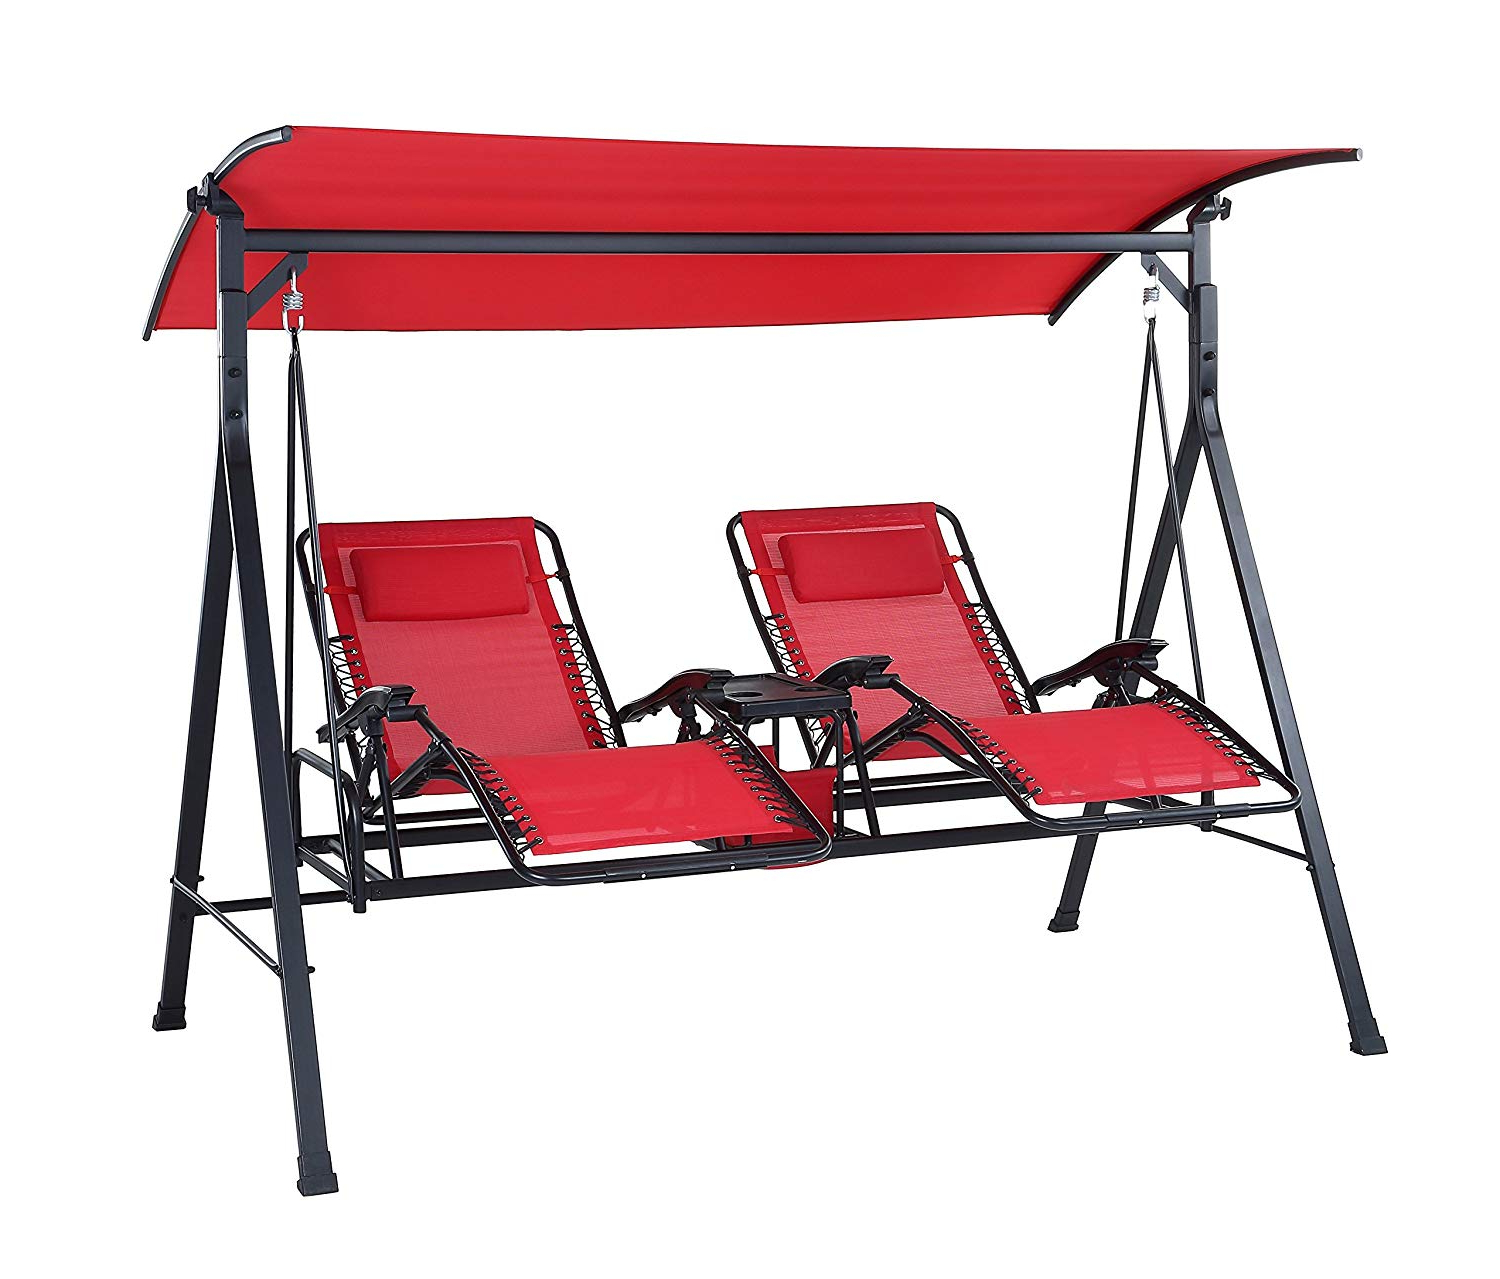 [%best Outdoor Reclining Zero Gravity Swing [2020 Update With Popular 3 Person Red With Brown Powder Coated Frame Steel Outdoor Swings|3 Person Red With Brown Powder Coated Frame Steel Outdoor Swings For Newest Best Outdoor Reclining Zero Gravity Swing [2020 Update|well Known 3 Person Red With Brown Powder Coated Frame Steel Outdoor Swings In Best Outdoor Reclining Zero Gravity Swing [2020 Update|recent Best Outdoor Reclining Zero Gravity Swing [2020 Update In 3 Person Red With Brown Powder Coated Frame Steel Outdoor Swings%] (View 23 of 30)